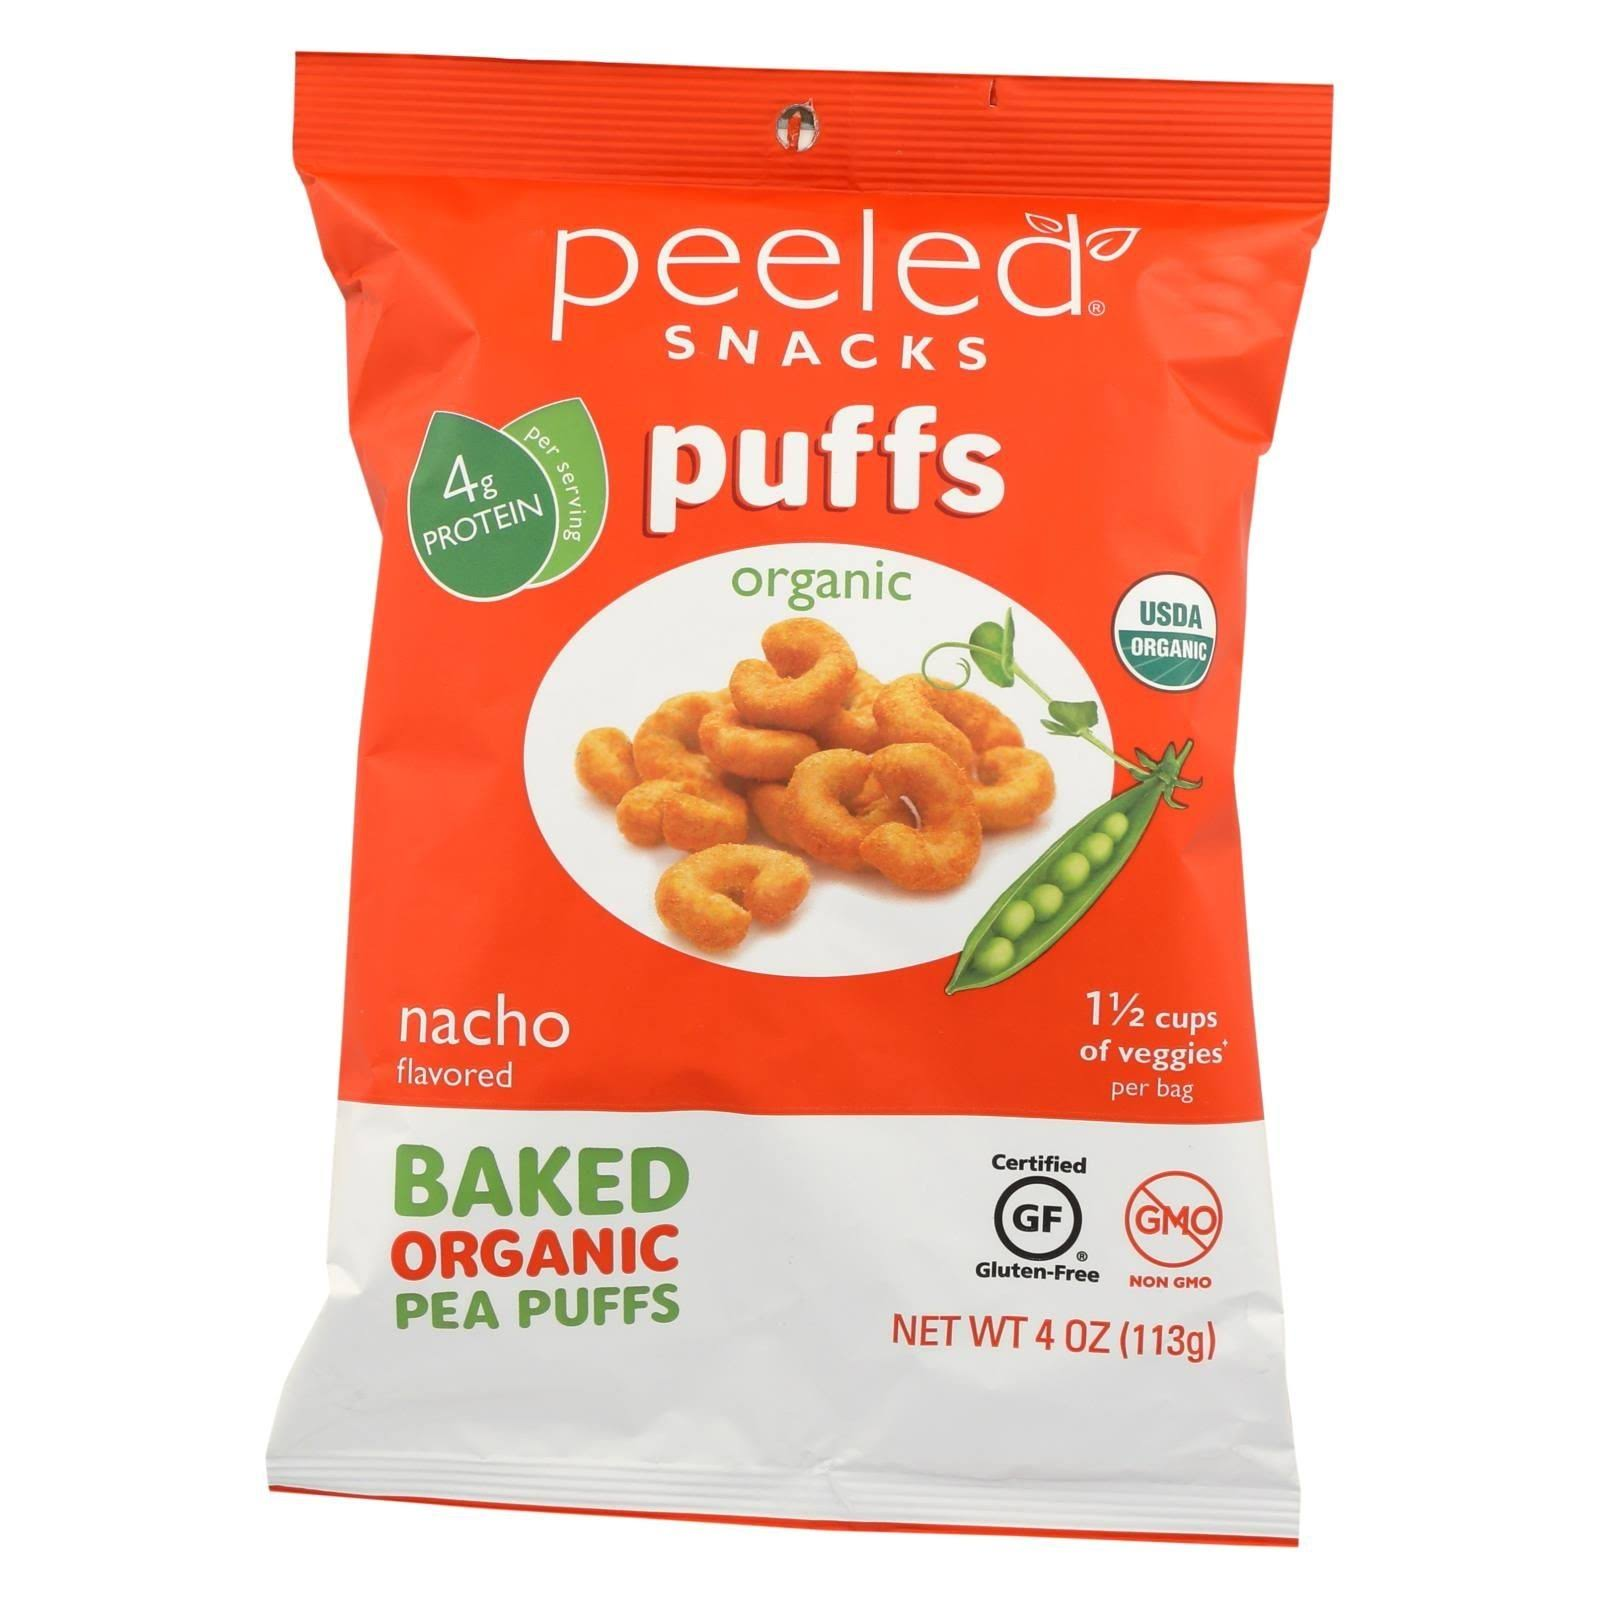 Peeled 2142677 4 oz Nacho Organic Bake Pea Puffs - Case of 12